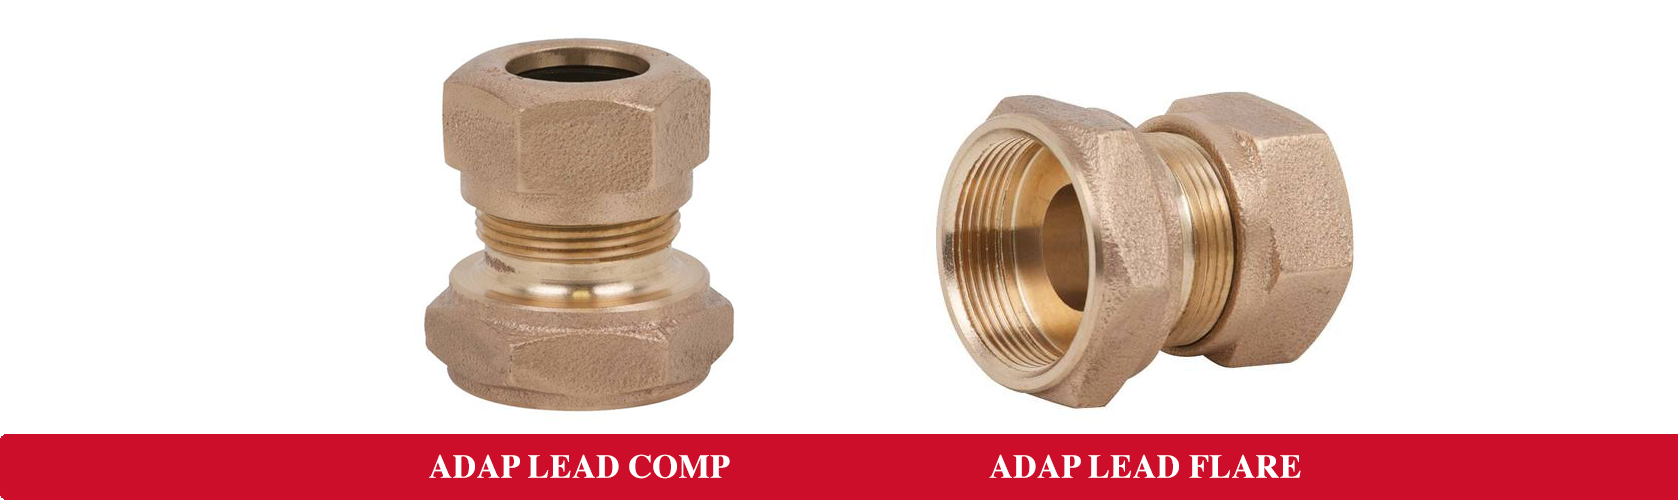 Lead Flange Adapters: Needs for Replacing Lead Lines